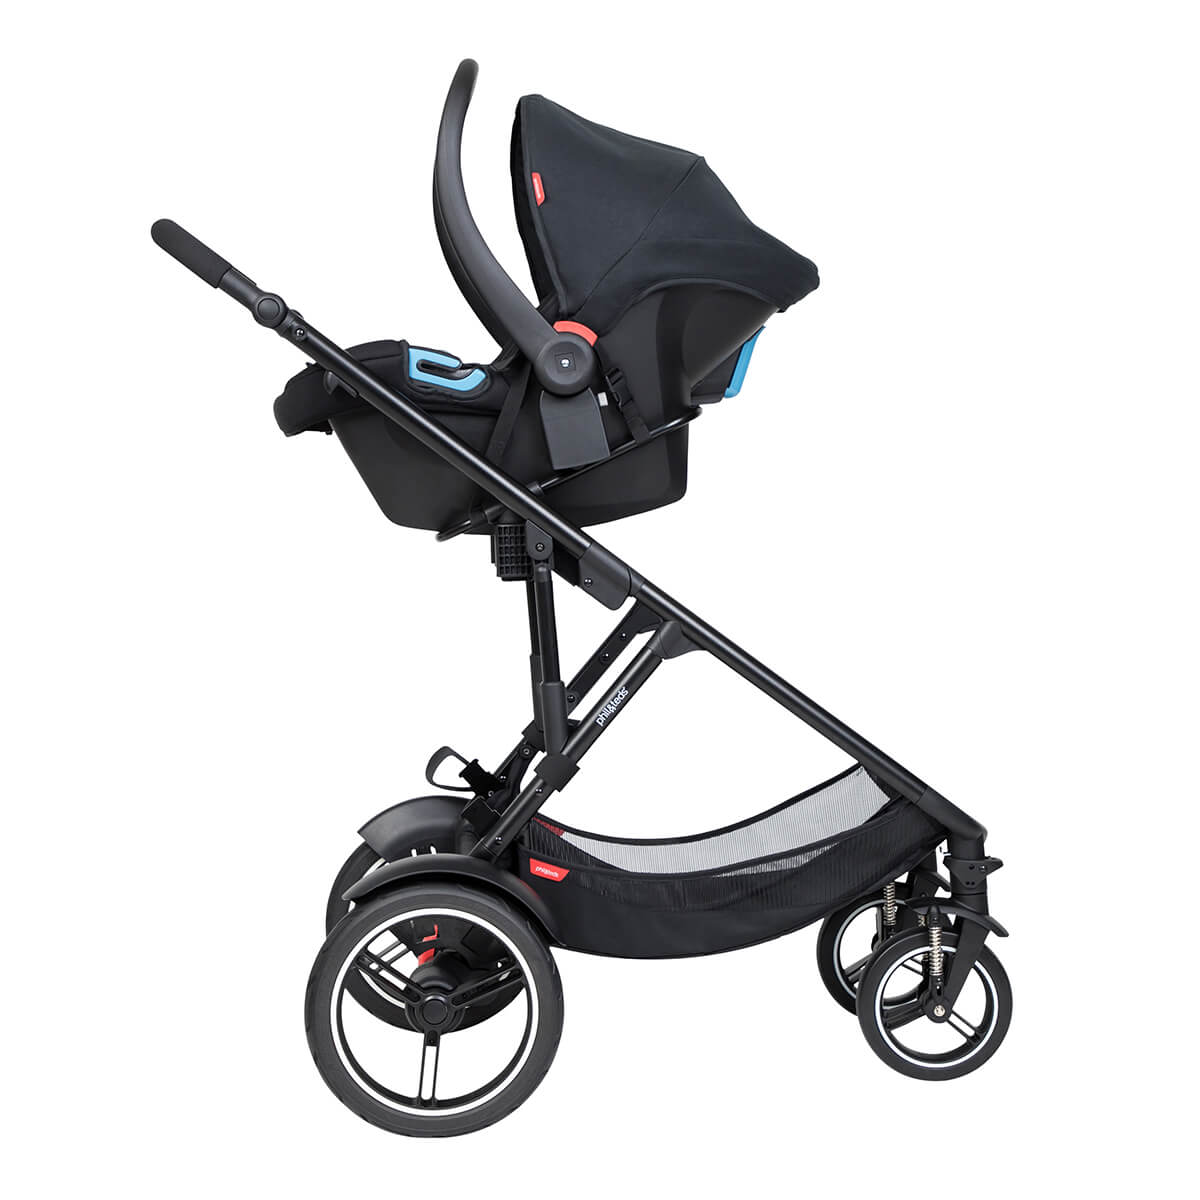 https://cdn.accentuate.io/4509529276504/19272668119128/philteds-voyager-buggy-with-travel-system-in-parent-facing-mode-v1626484780867.jpg?1200x1200